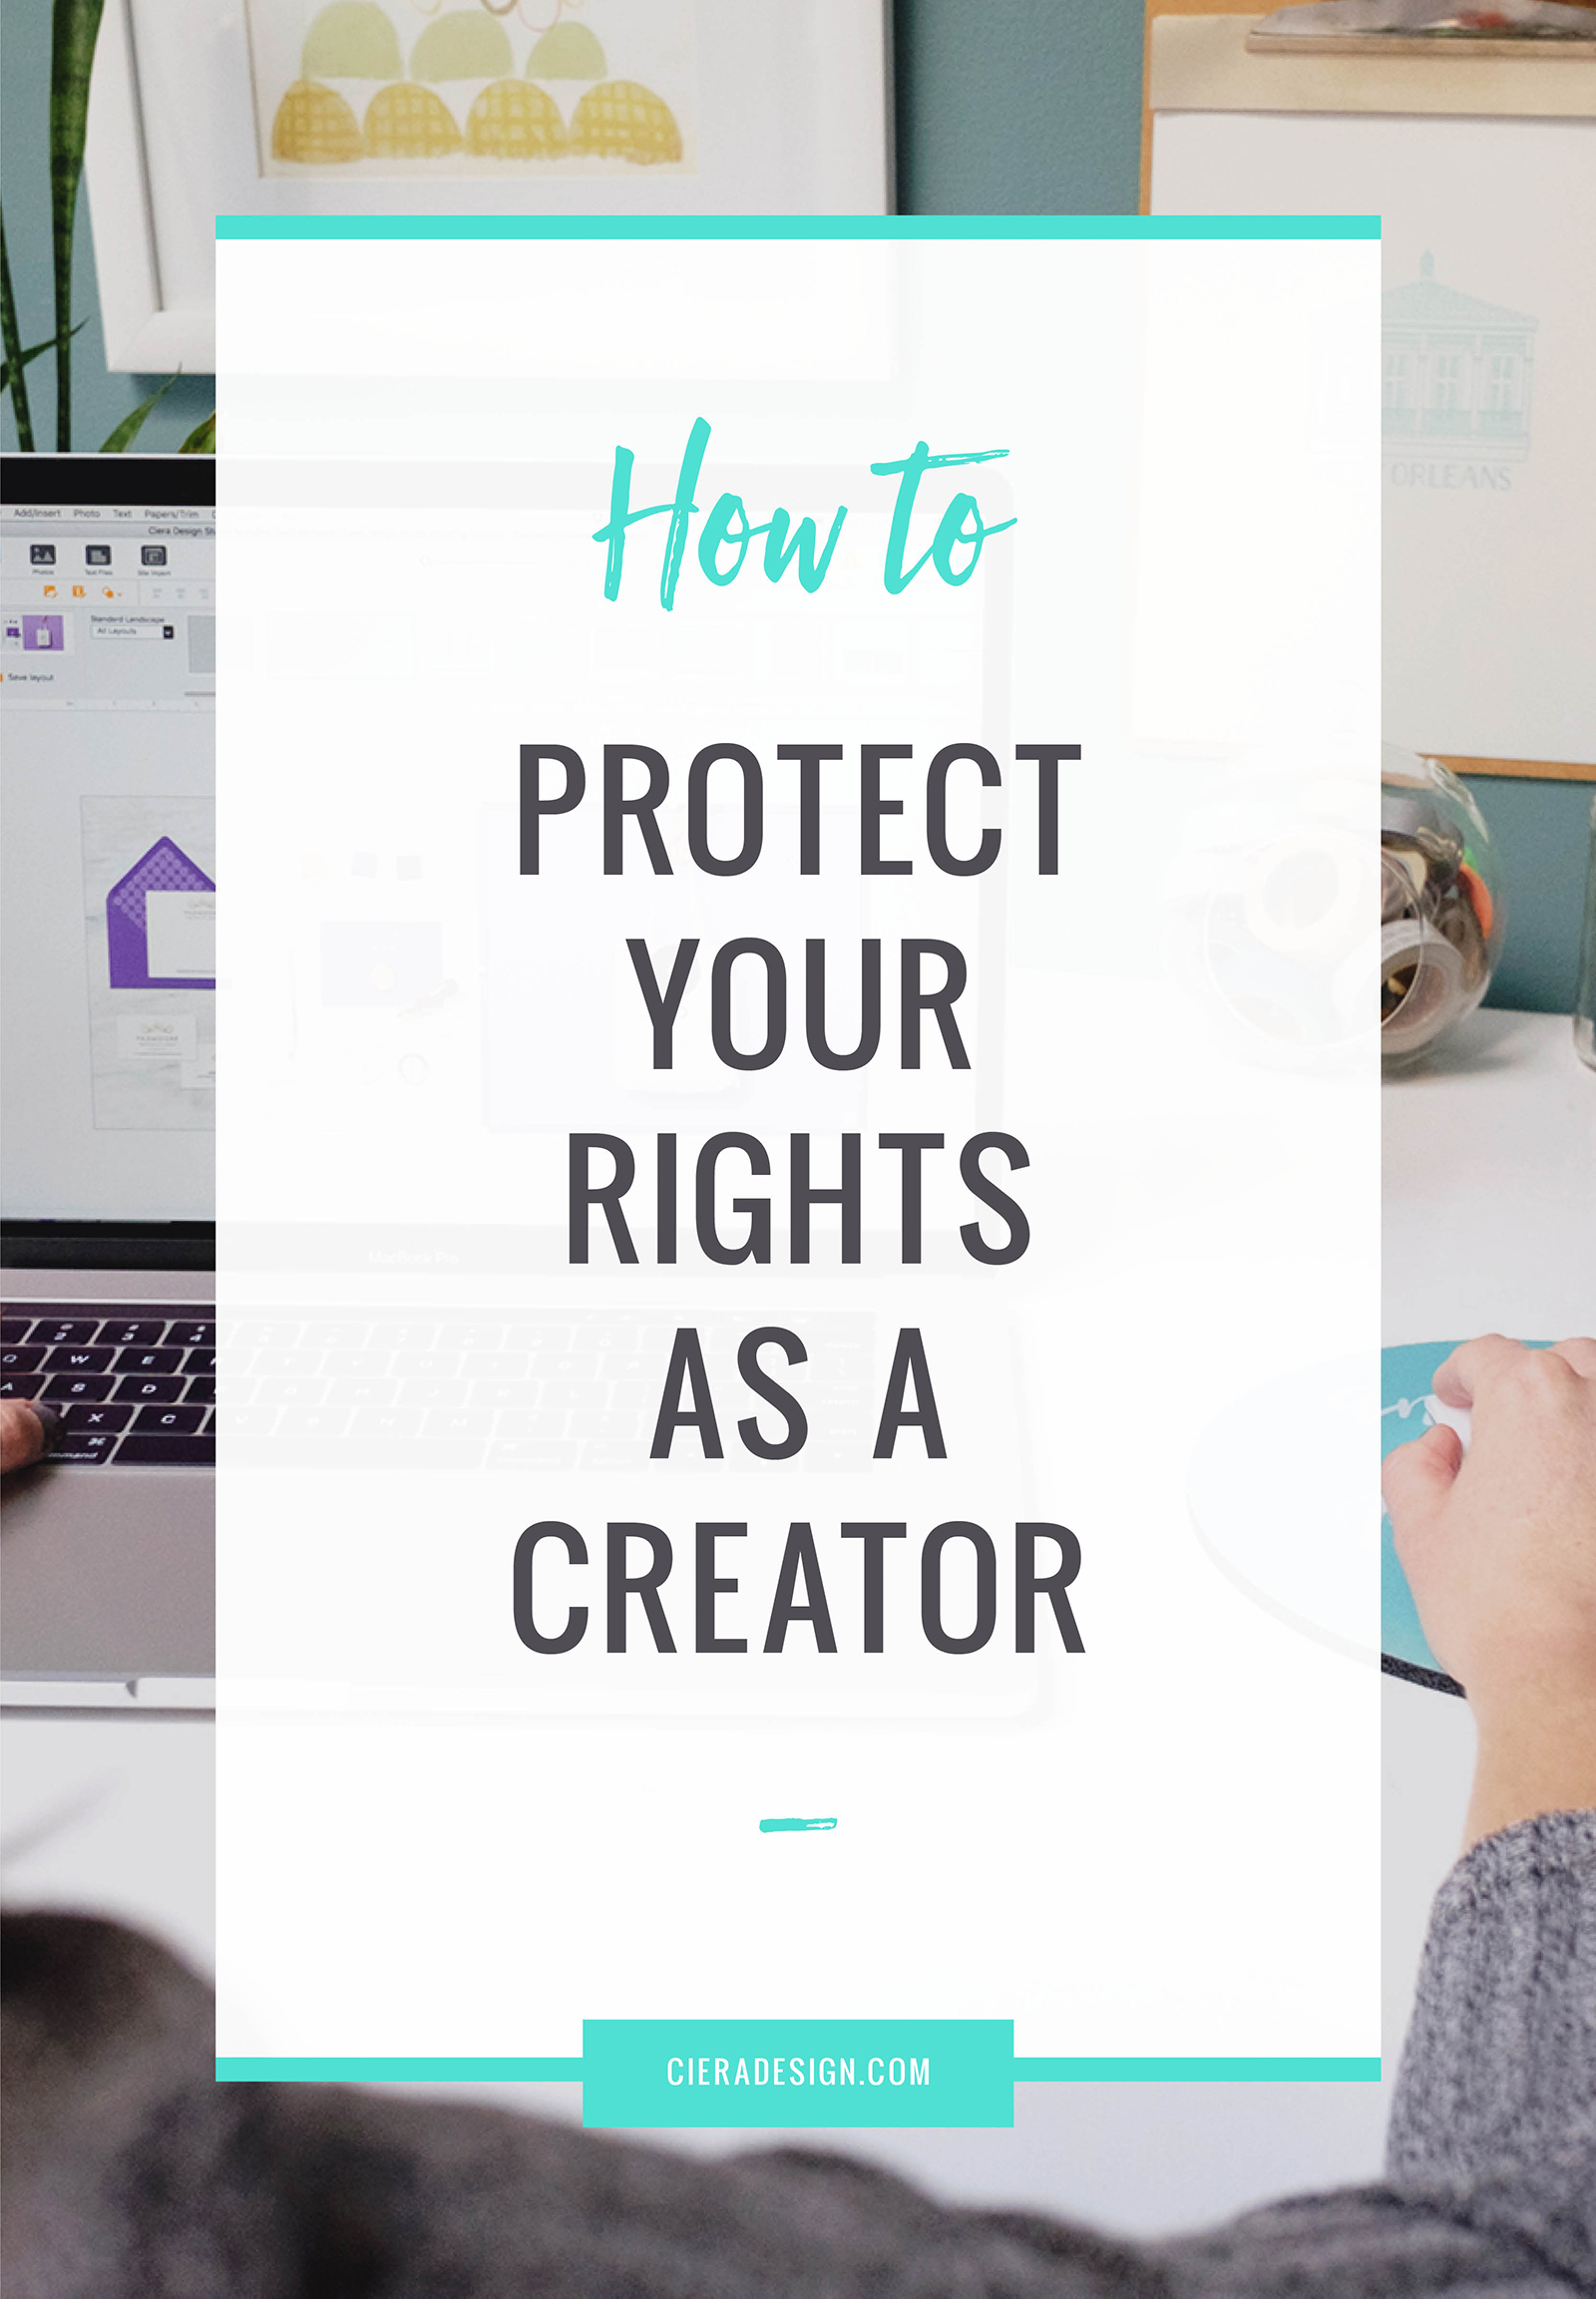 How to protect your rights as a creator, artist or innovator.